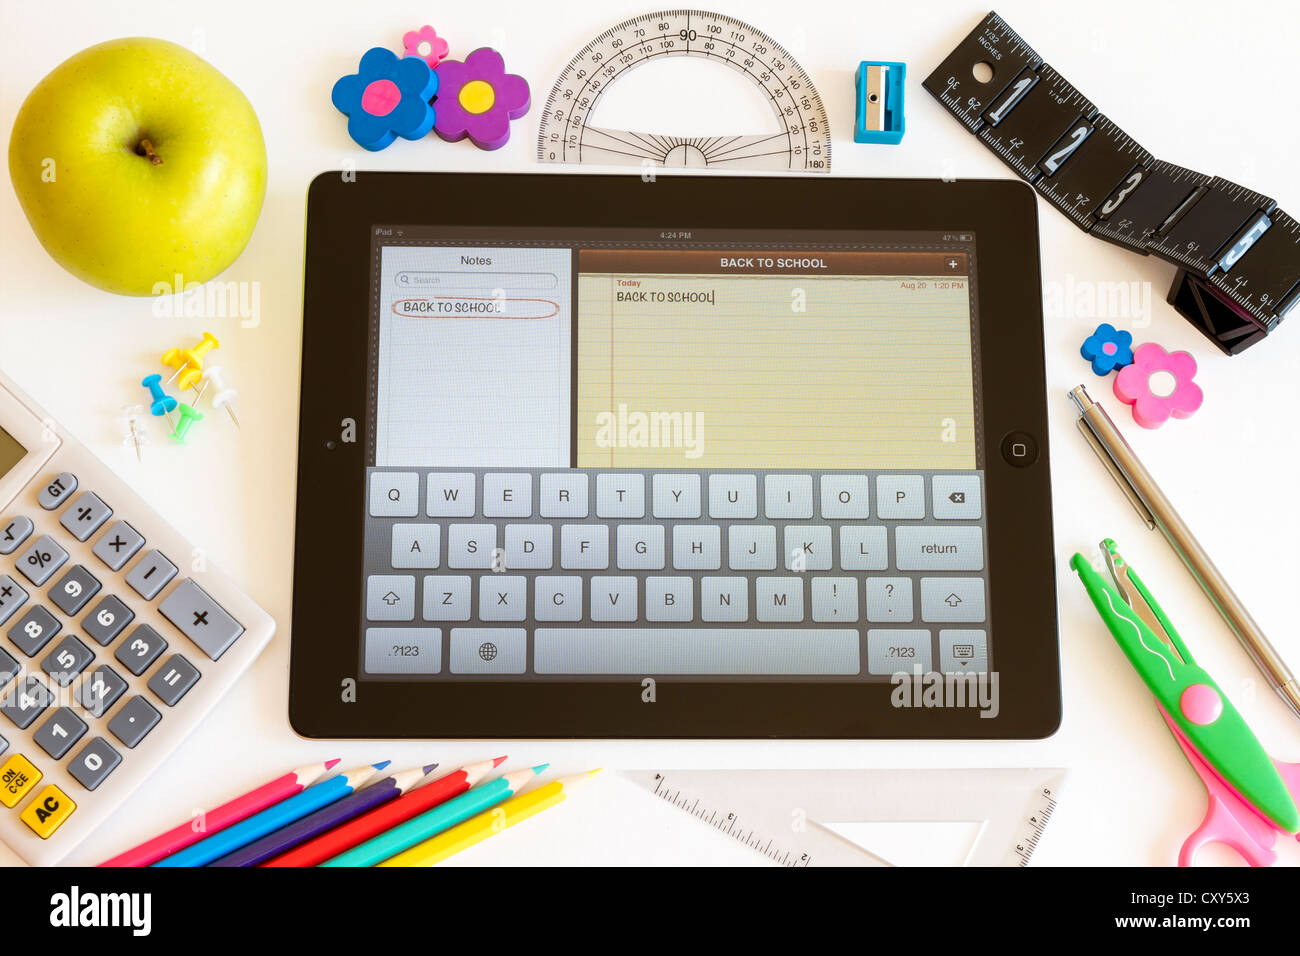 Ipad 3 with Notes application and school accesories on white - Stock Image